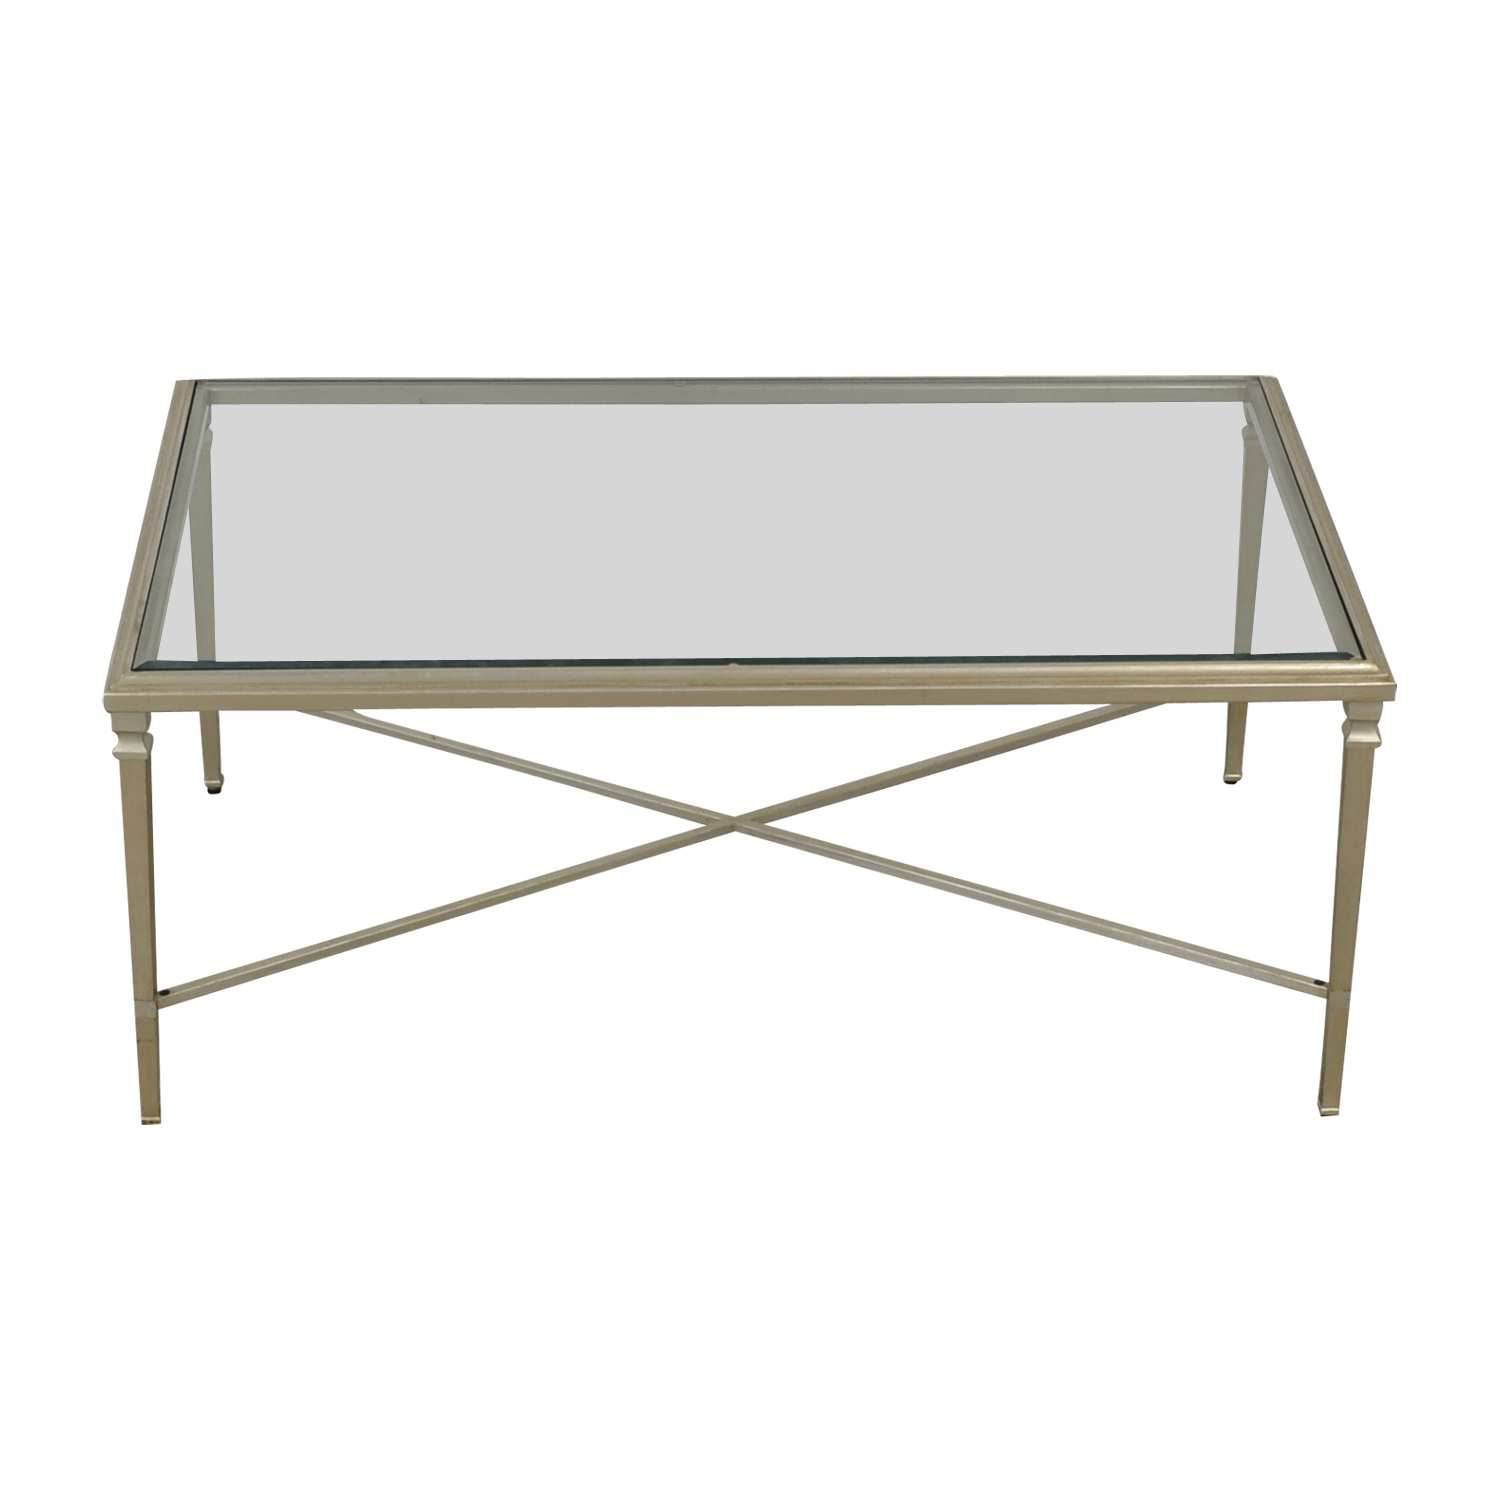 Ethan Allen Ethan Allen Heron Coffee Table silver